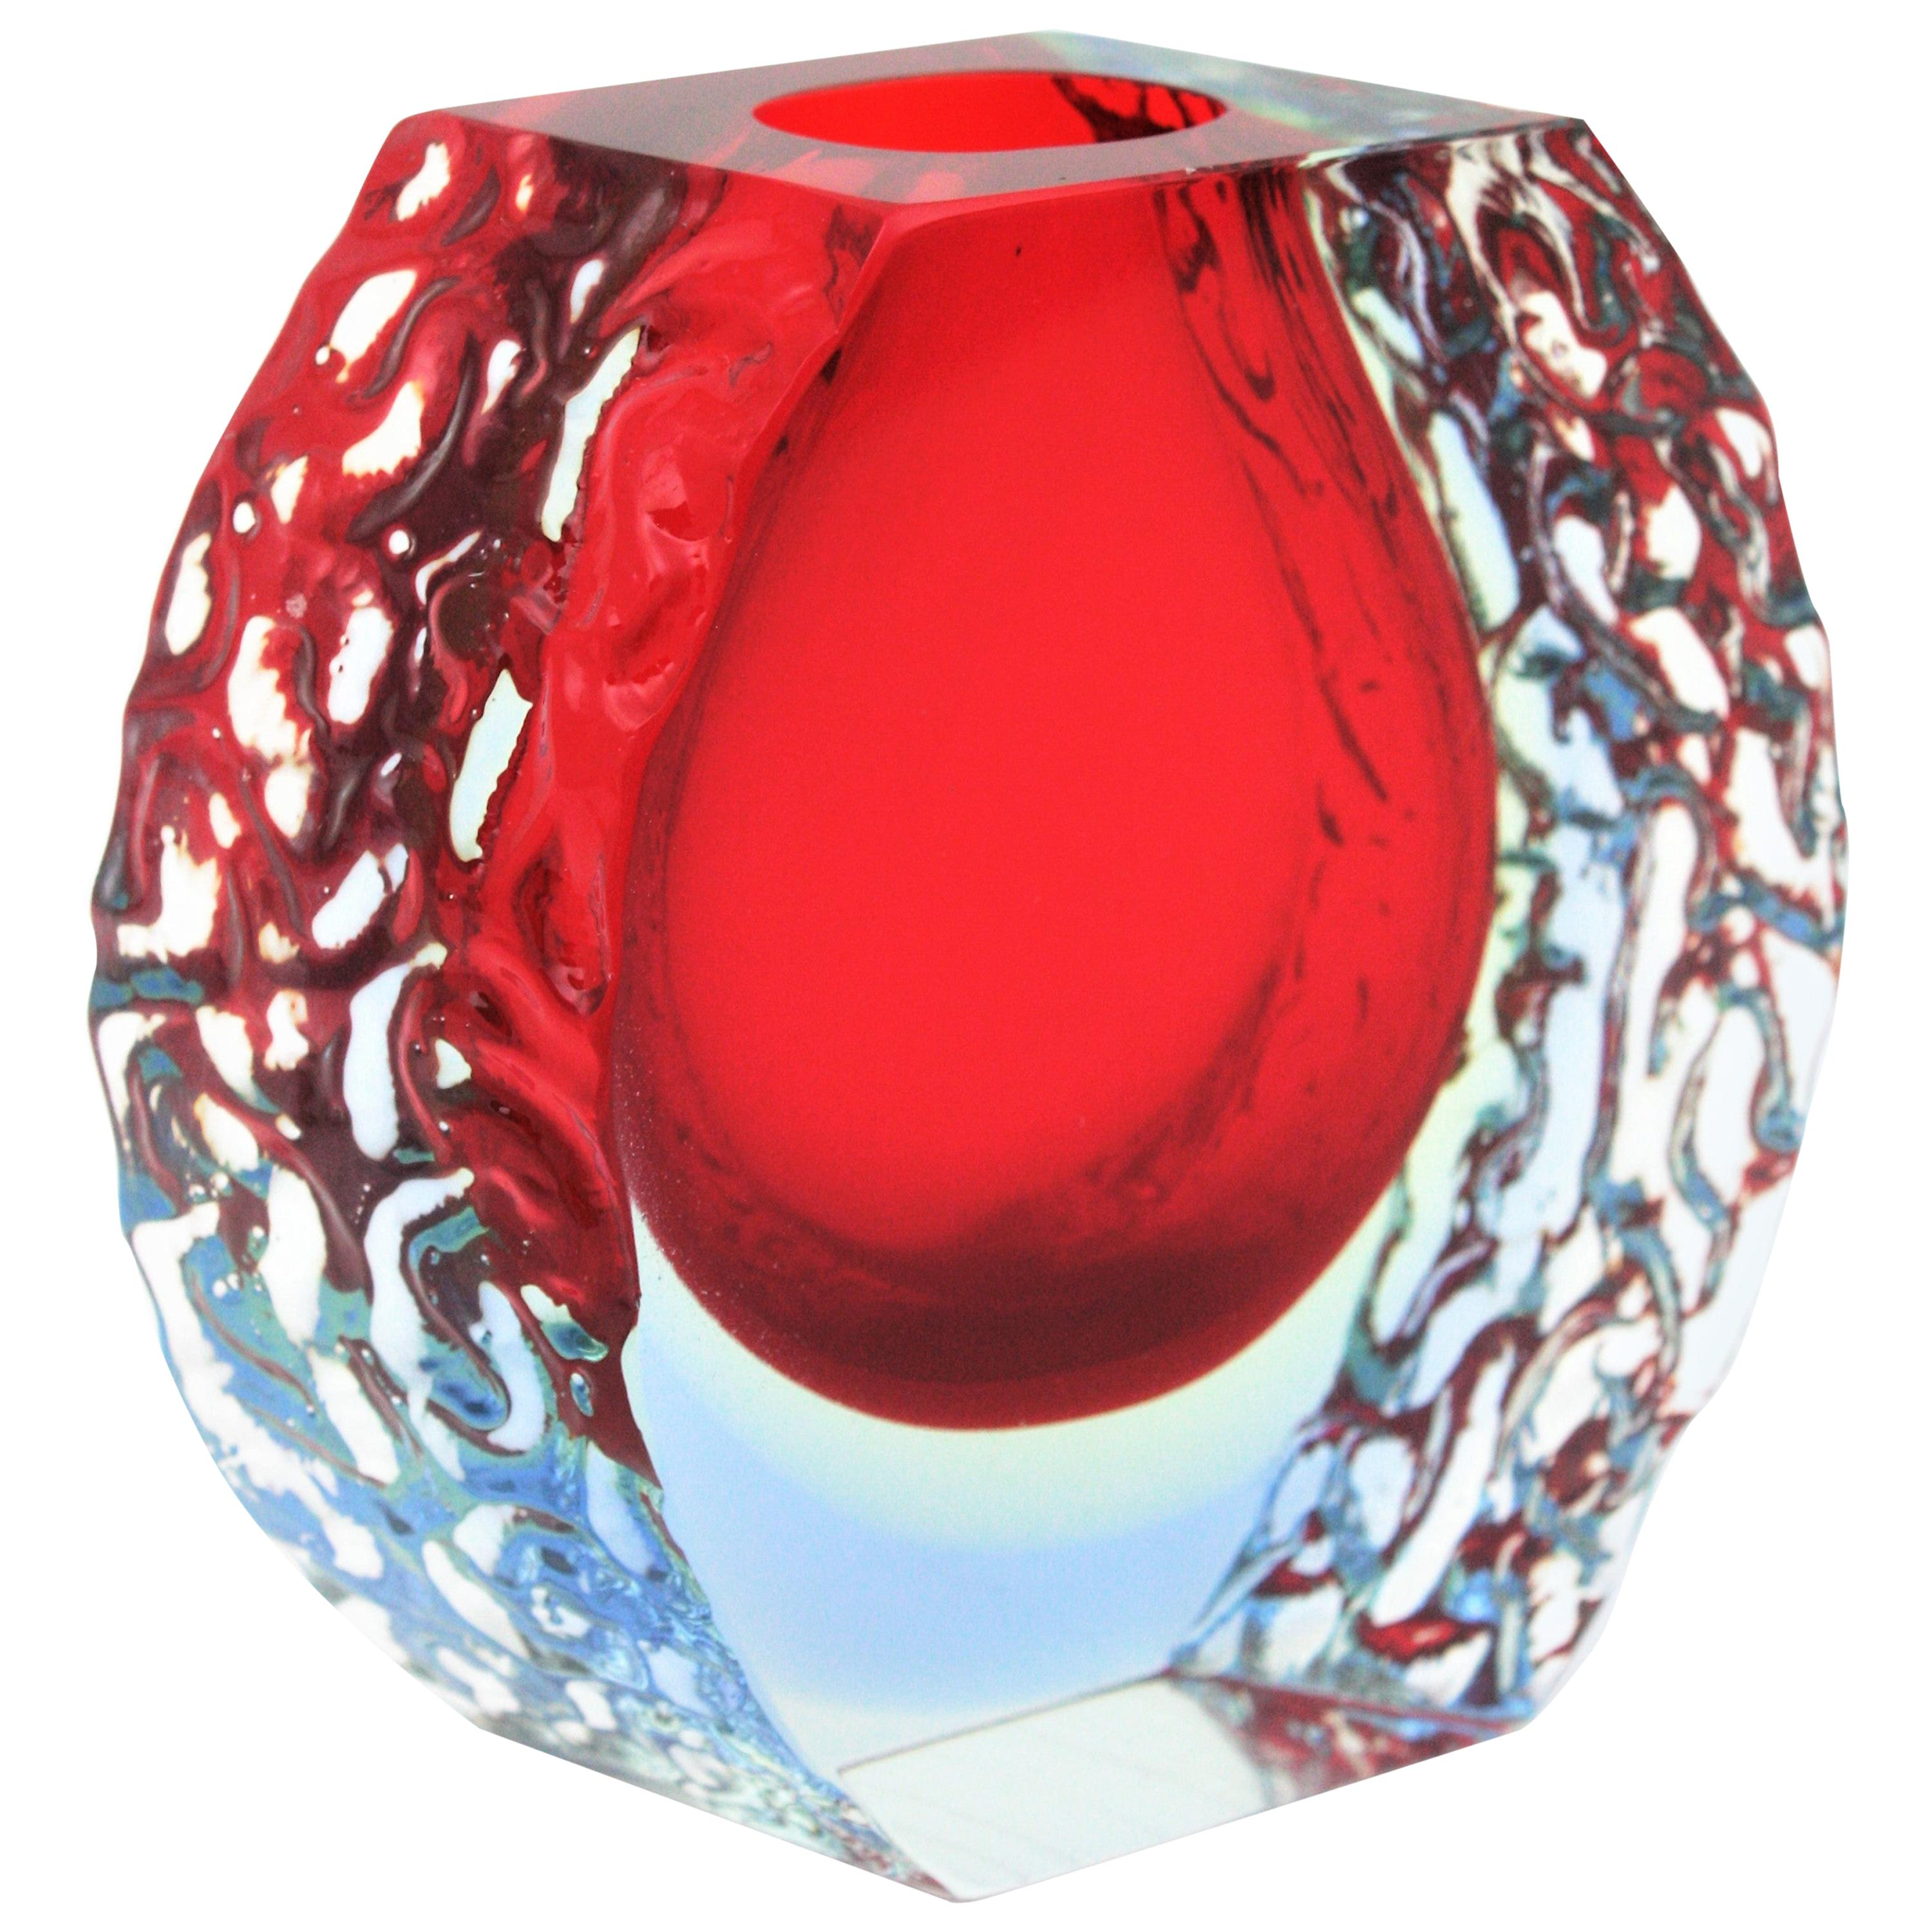 Large Mandruzzato Murano Faceted Textured Red, Blue, Yellow Sommerso Glass Vase